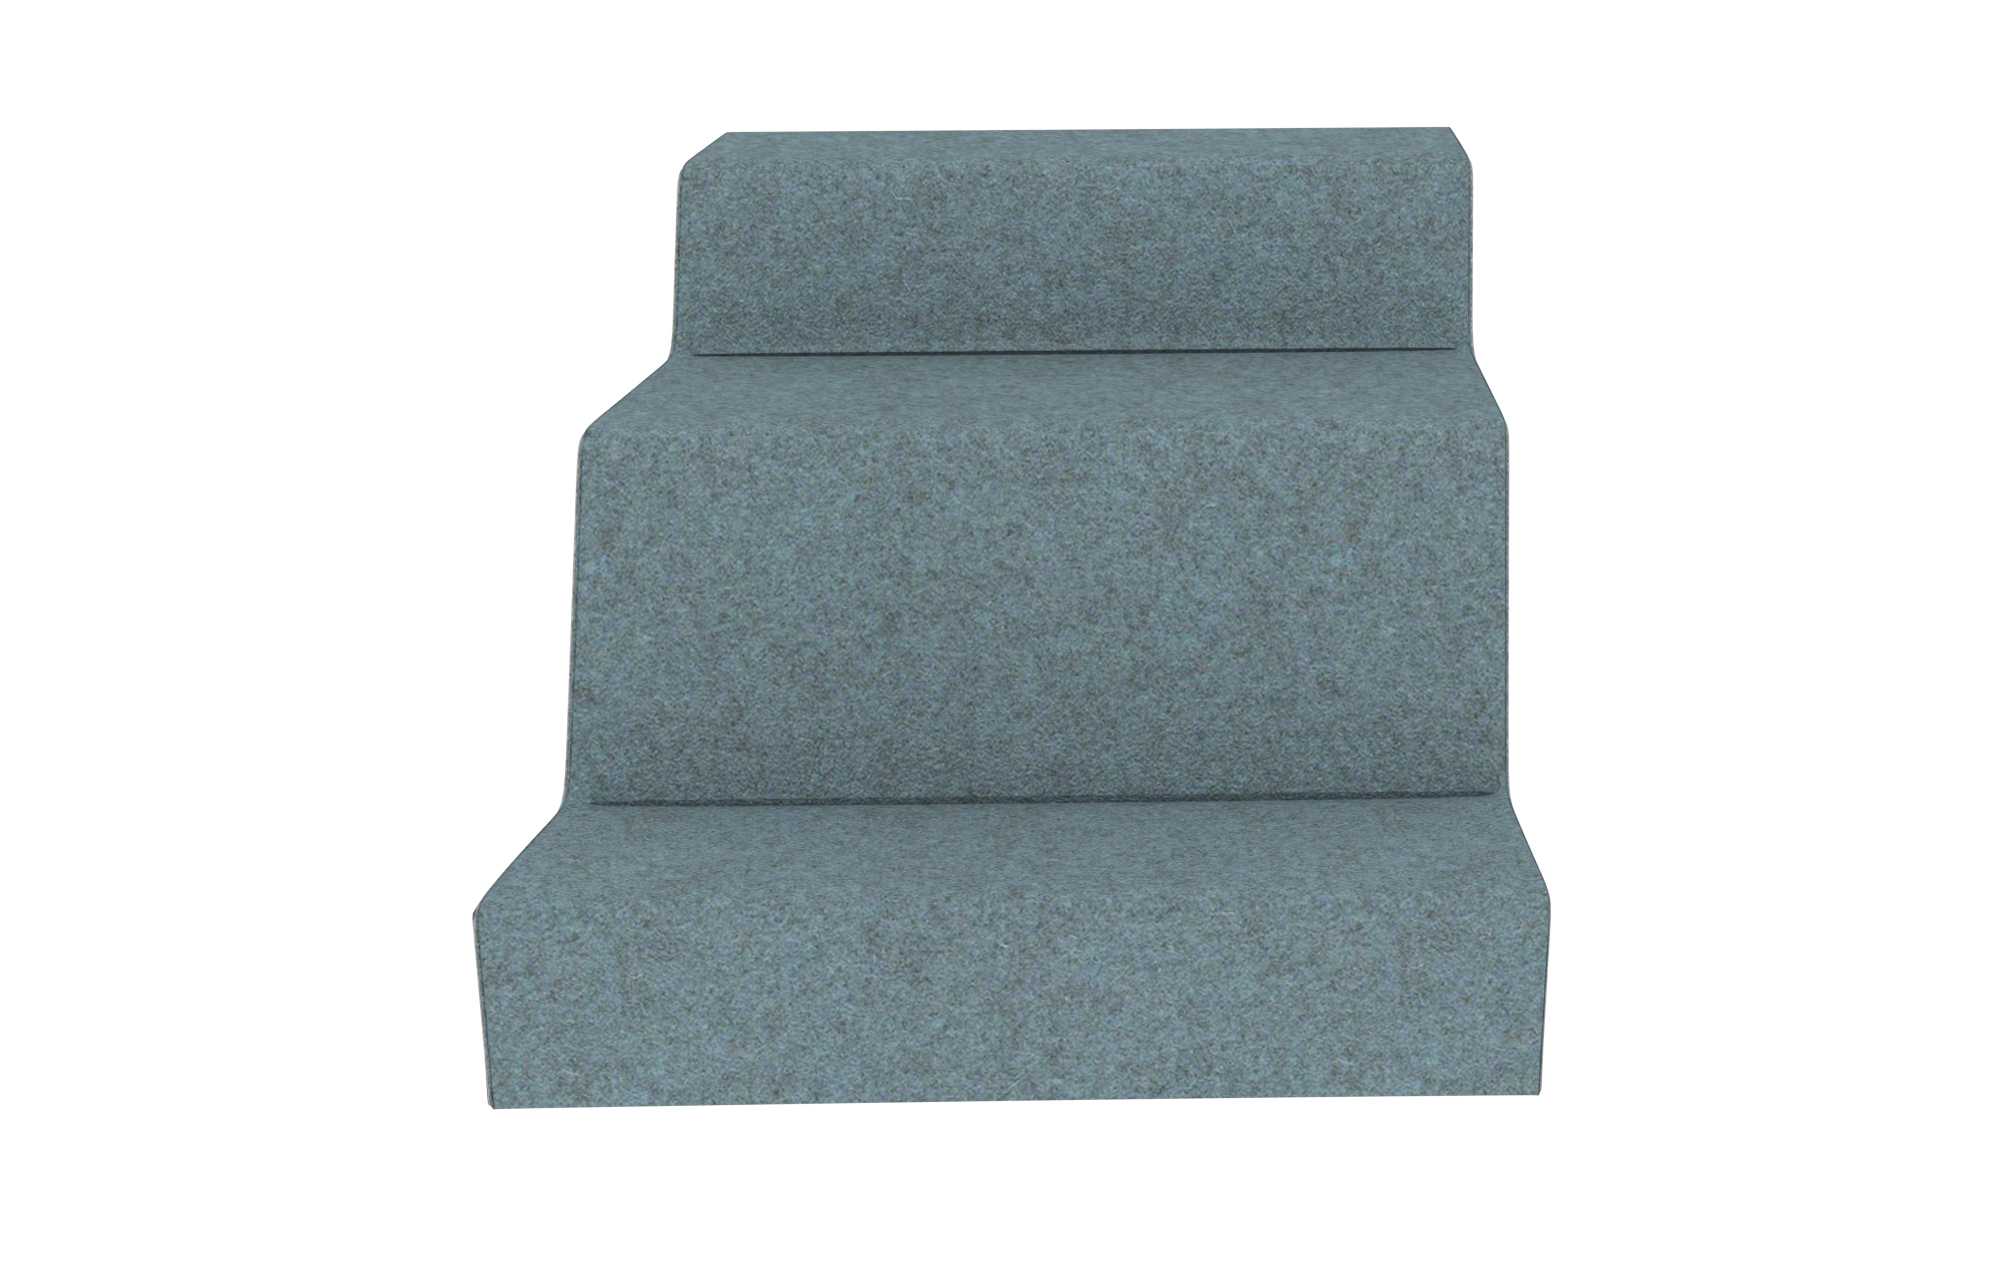 Hickory Contract UPpJr. Modular Lounge 4021-3S-R